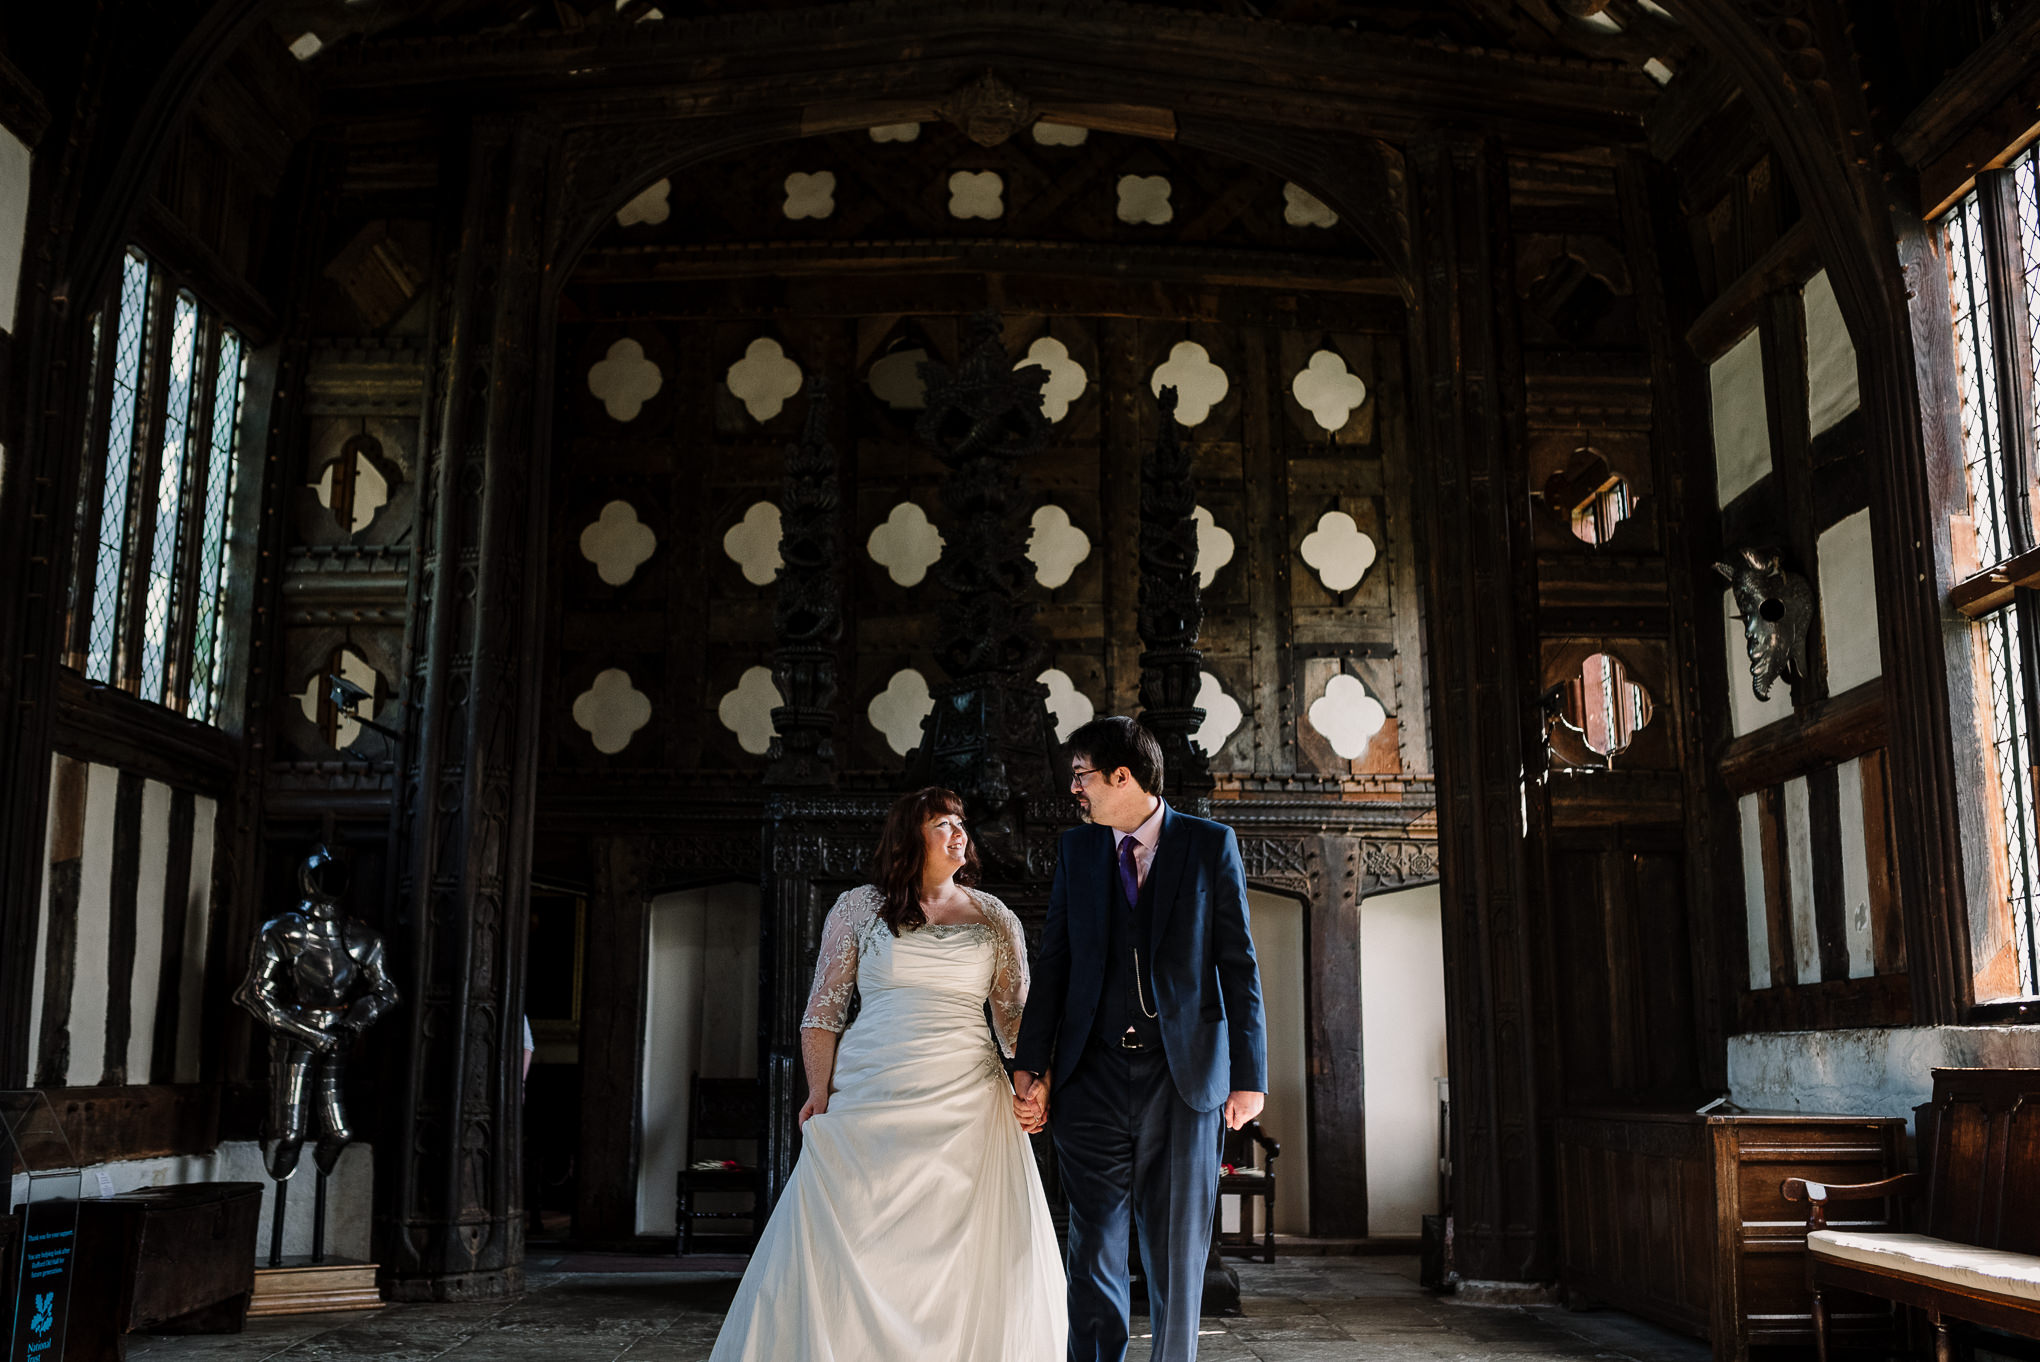 Bride and groom walking through the Great Hall at Rufford Old Hall in Lancashire.